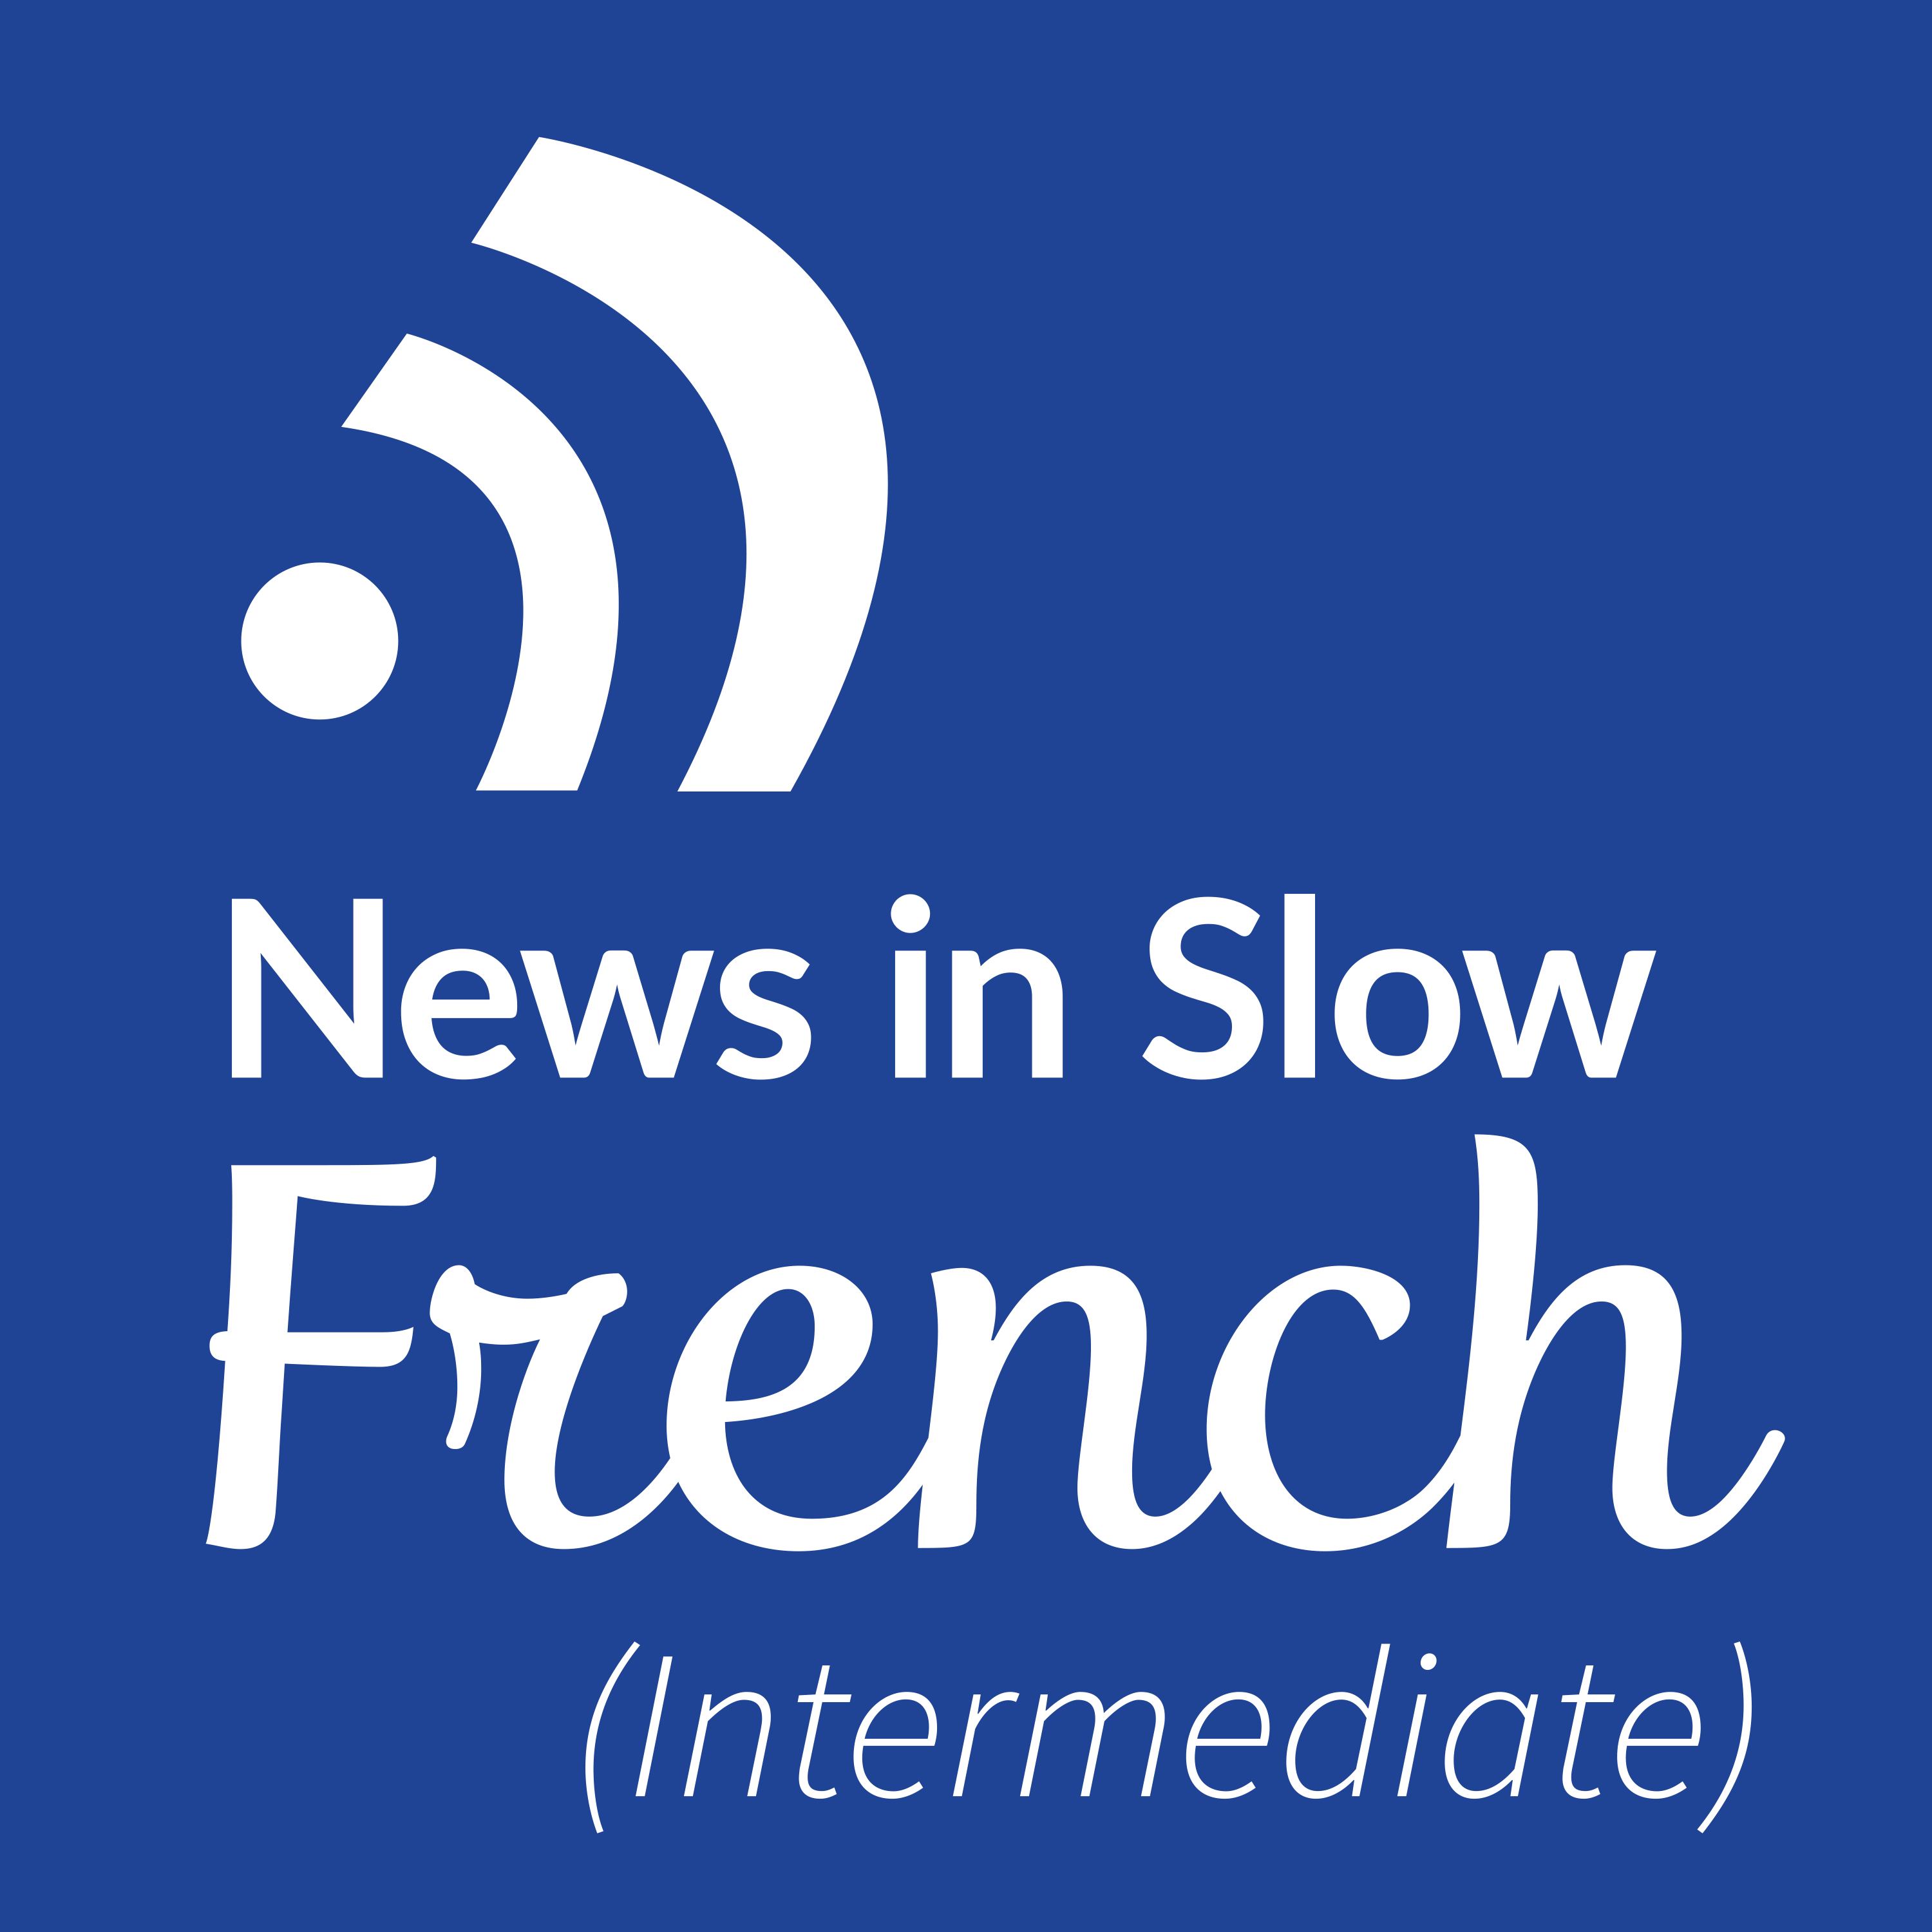 News in Slow French #301 - French news, grammar and idiomatic expressions